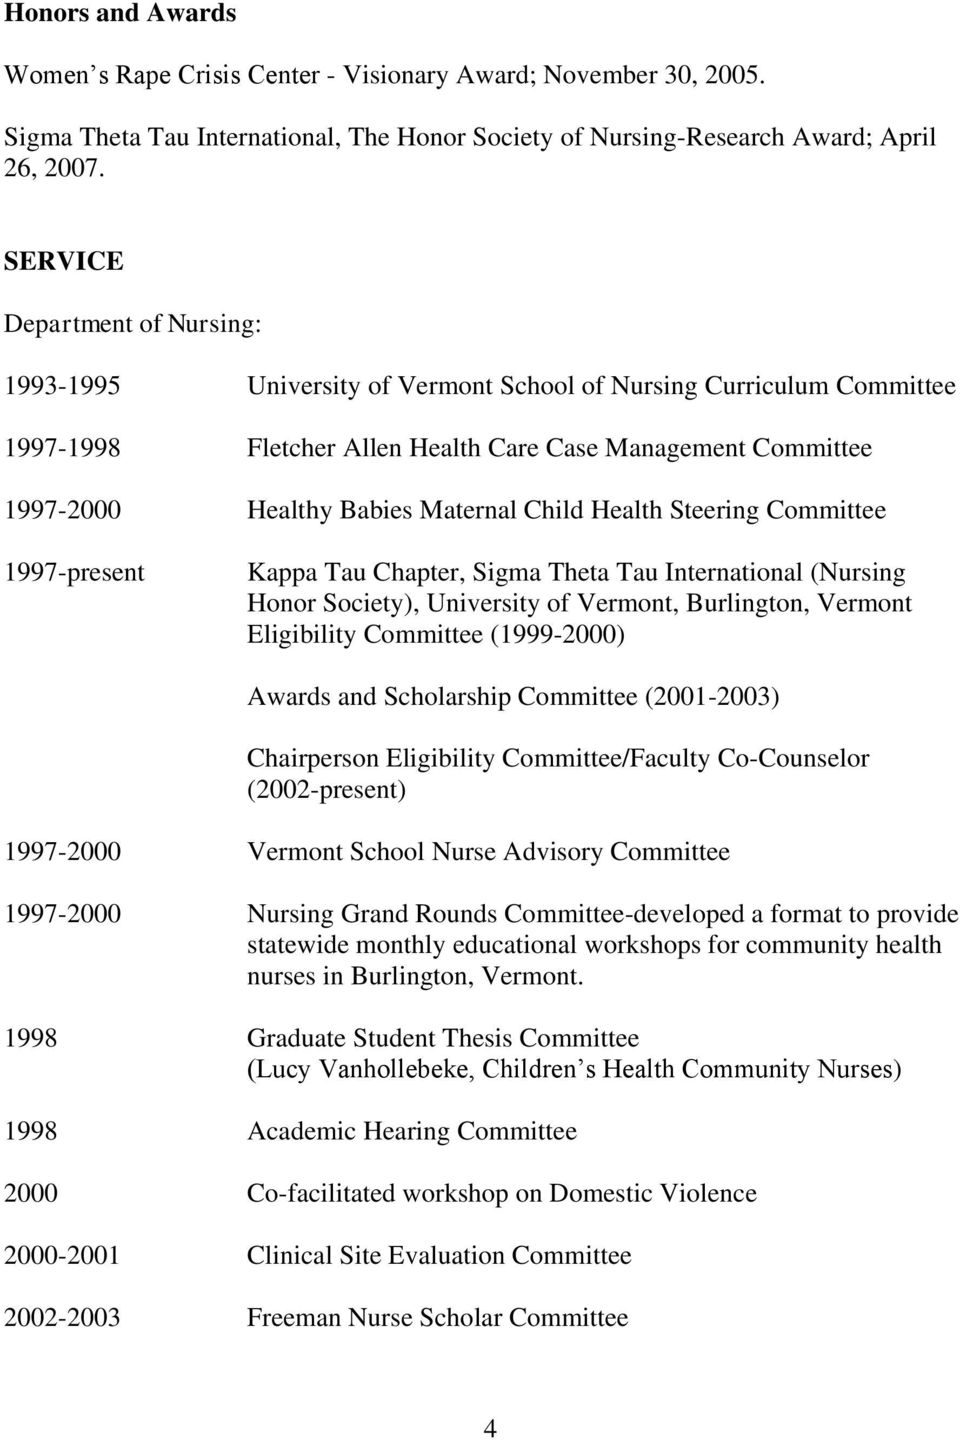 Child Health Steering Committee 1997-present Kappa Tau Chapter, Sigma Theta Tau International (Nursing Honor Society), University of Vermont, Burlington, Vermont Eligibility Committee (1999-2000)